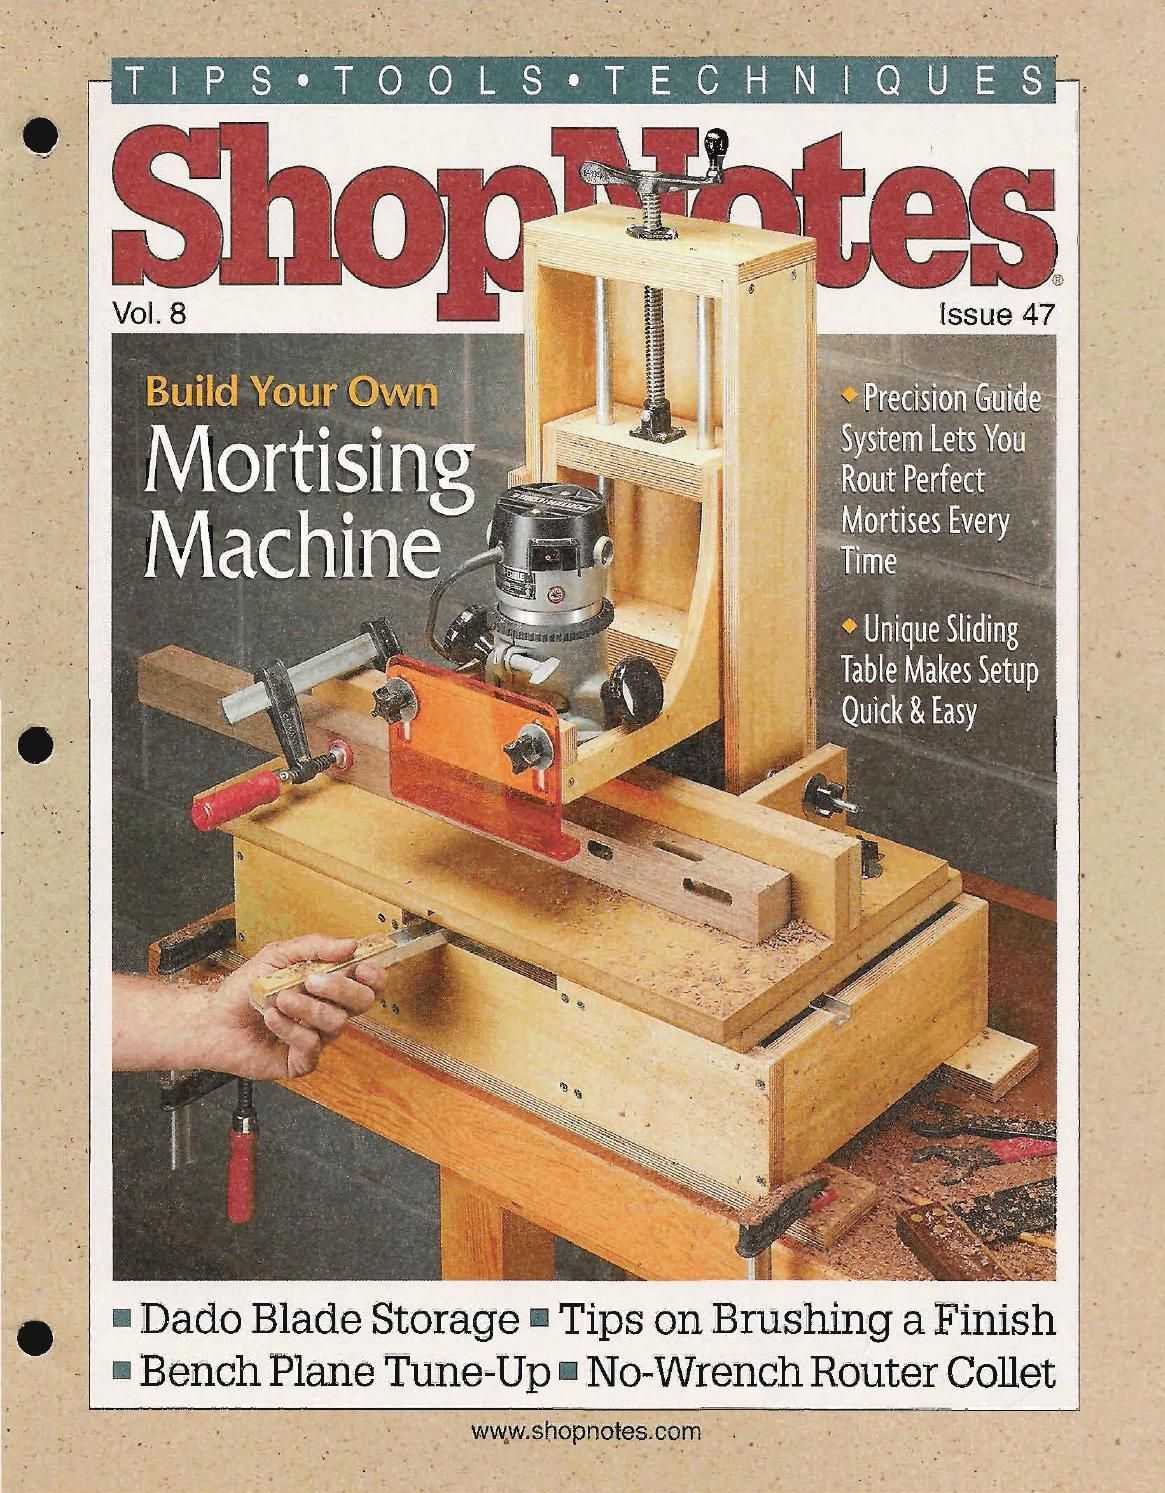 Shopnotes issue 47 a wood shopnote a 2020 pinterest shopnotes issue 47 router tablewoodworking greentooth Choice Image